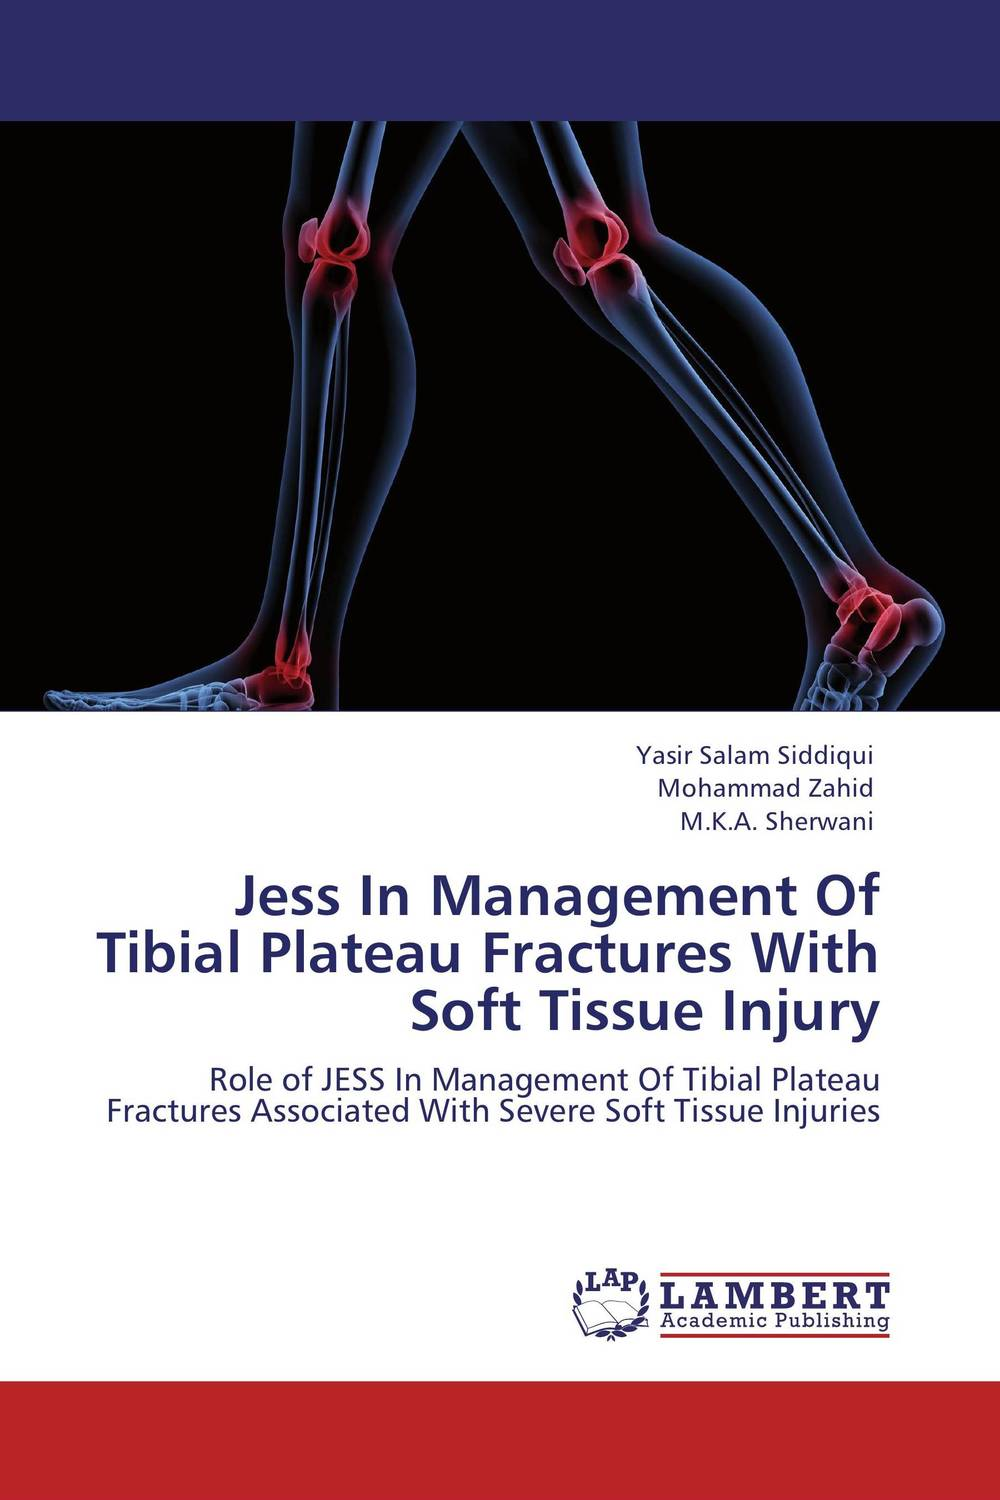 Jess In Management Of Tibial Plateau Fractures With Soft Tissue Injury adjustable knee joint meniscus knee rehabilitation equipment maintenance men and women with a fixed fractures knee ligament reco